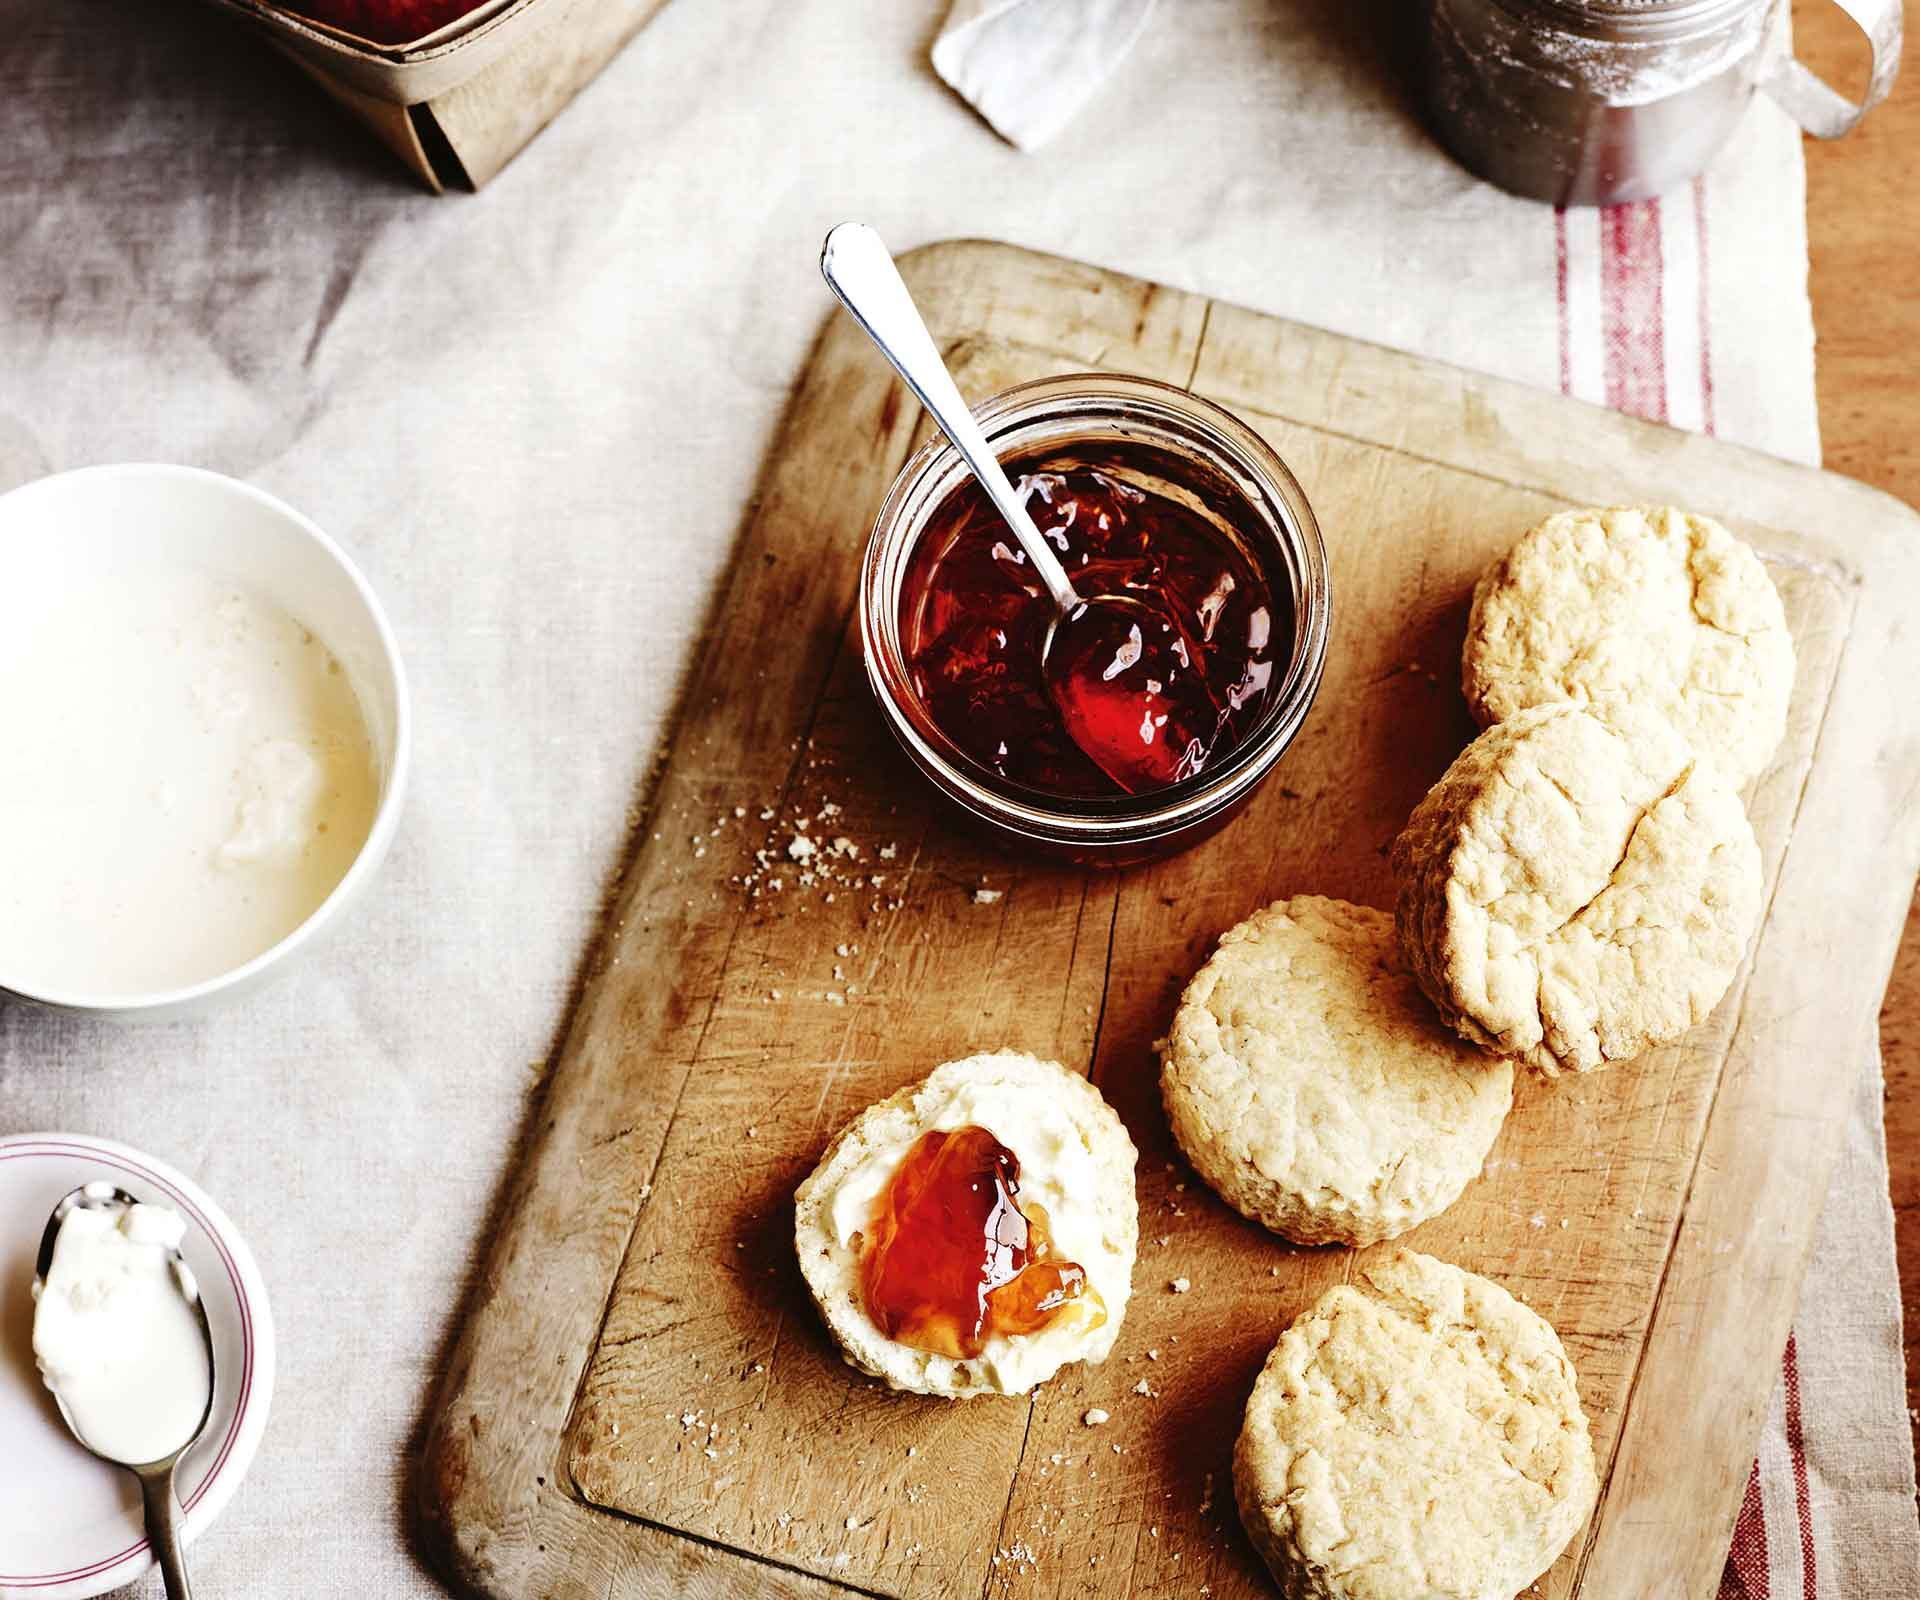 Simple scones recipe using buttermilk